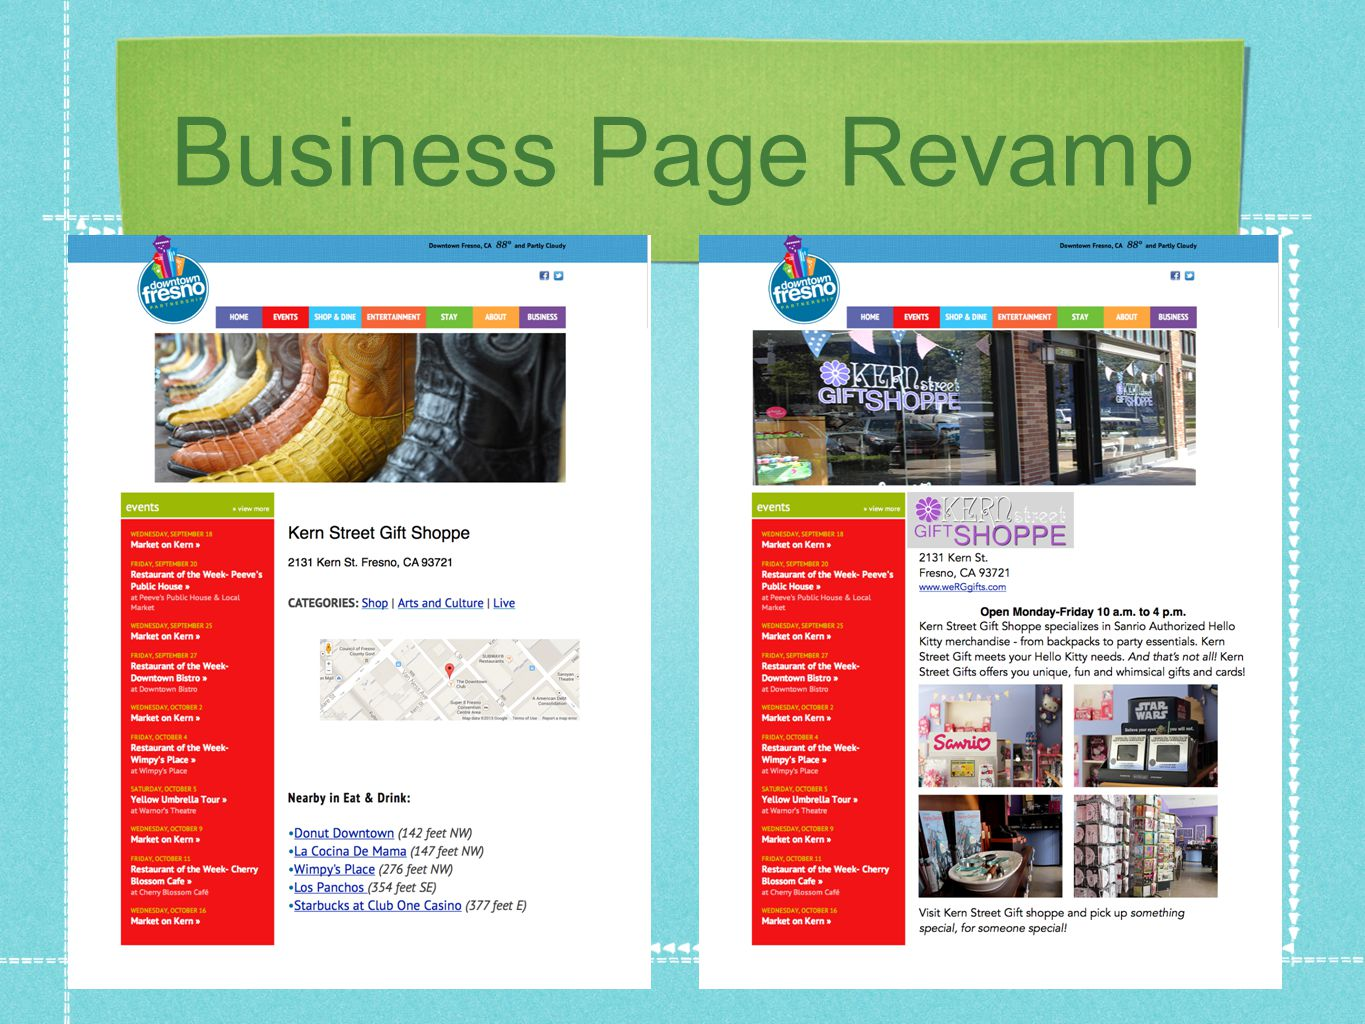 Business Page Revamp